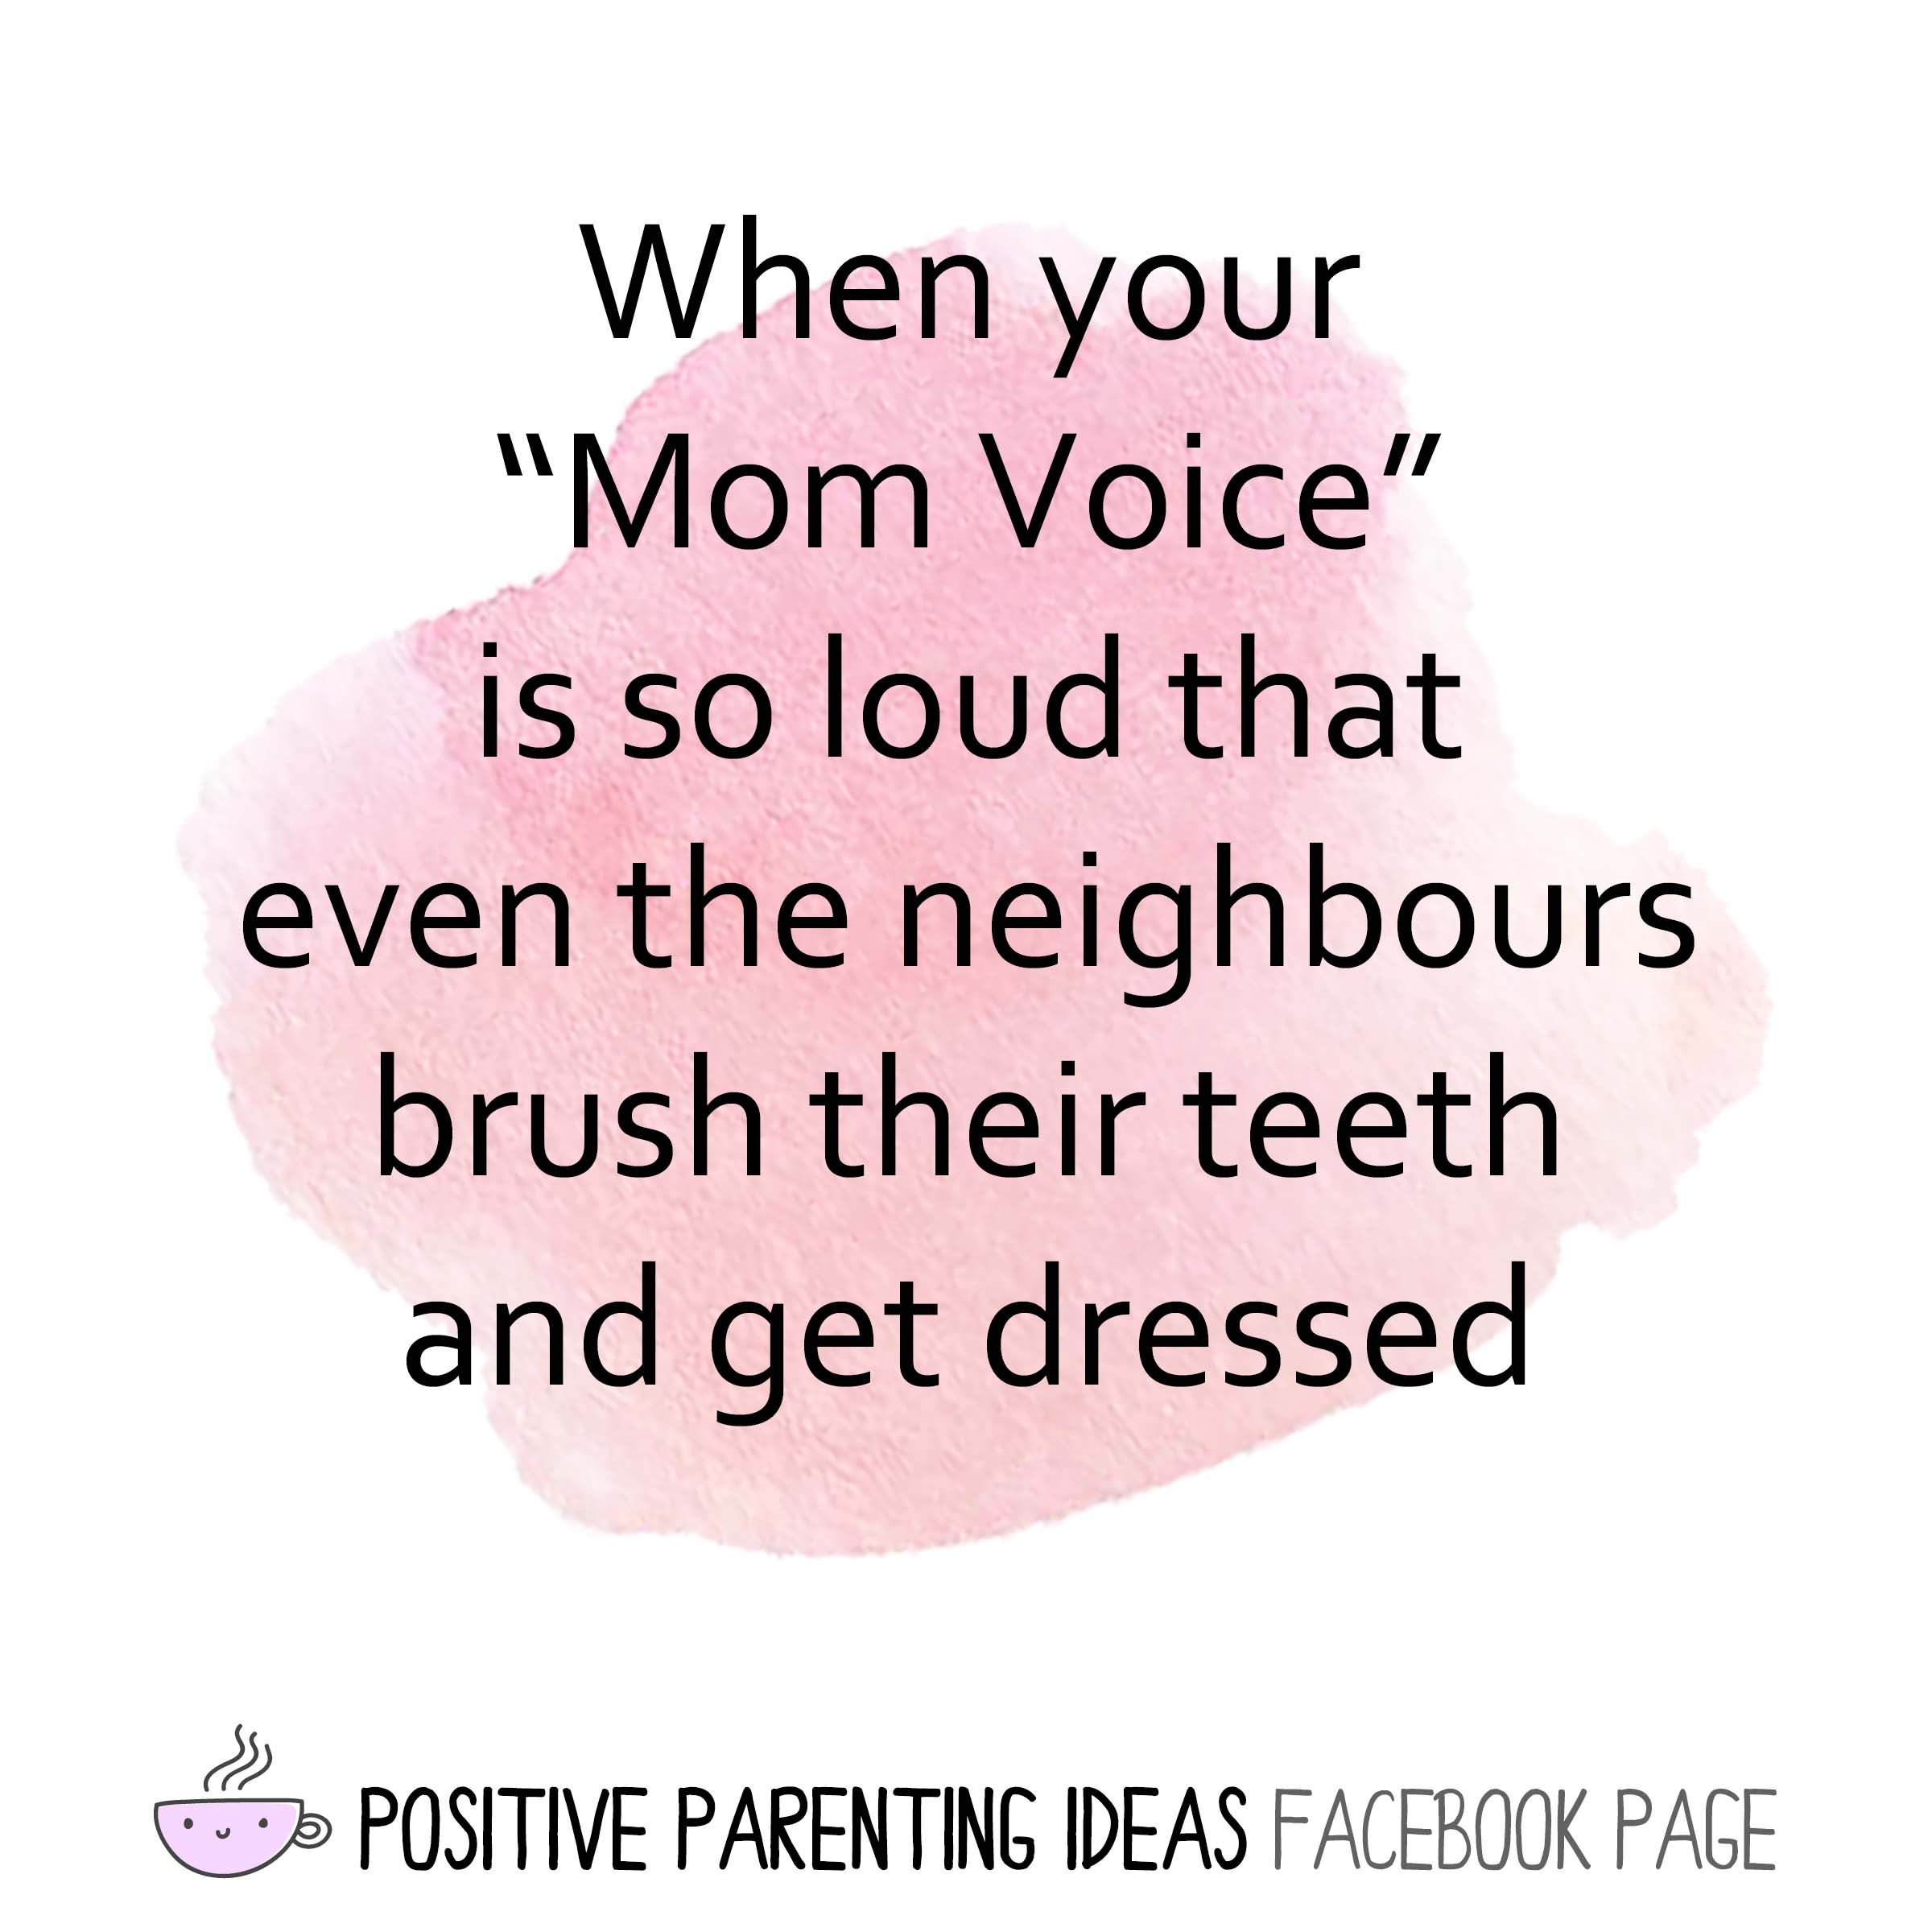 Funny Mom Quotes Funny Quotes About Moms Mom Funny Quotes Mom Quotes Funny Funny Mom Birthda Happy Birthday Mom Quotes Funny Mom Quotes Mom Birthday Quotes